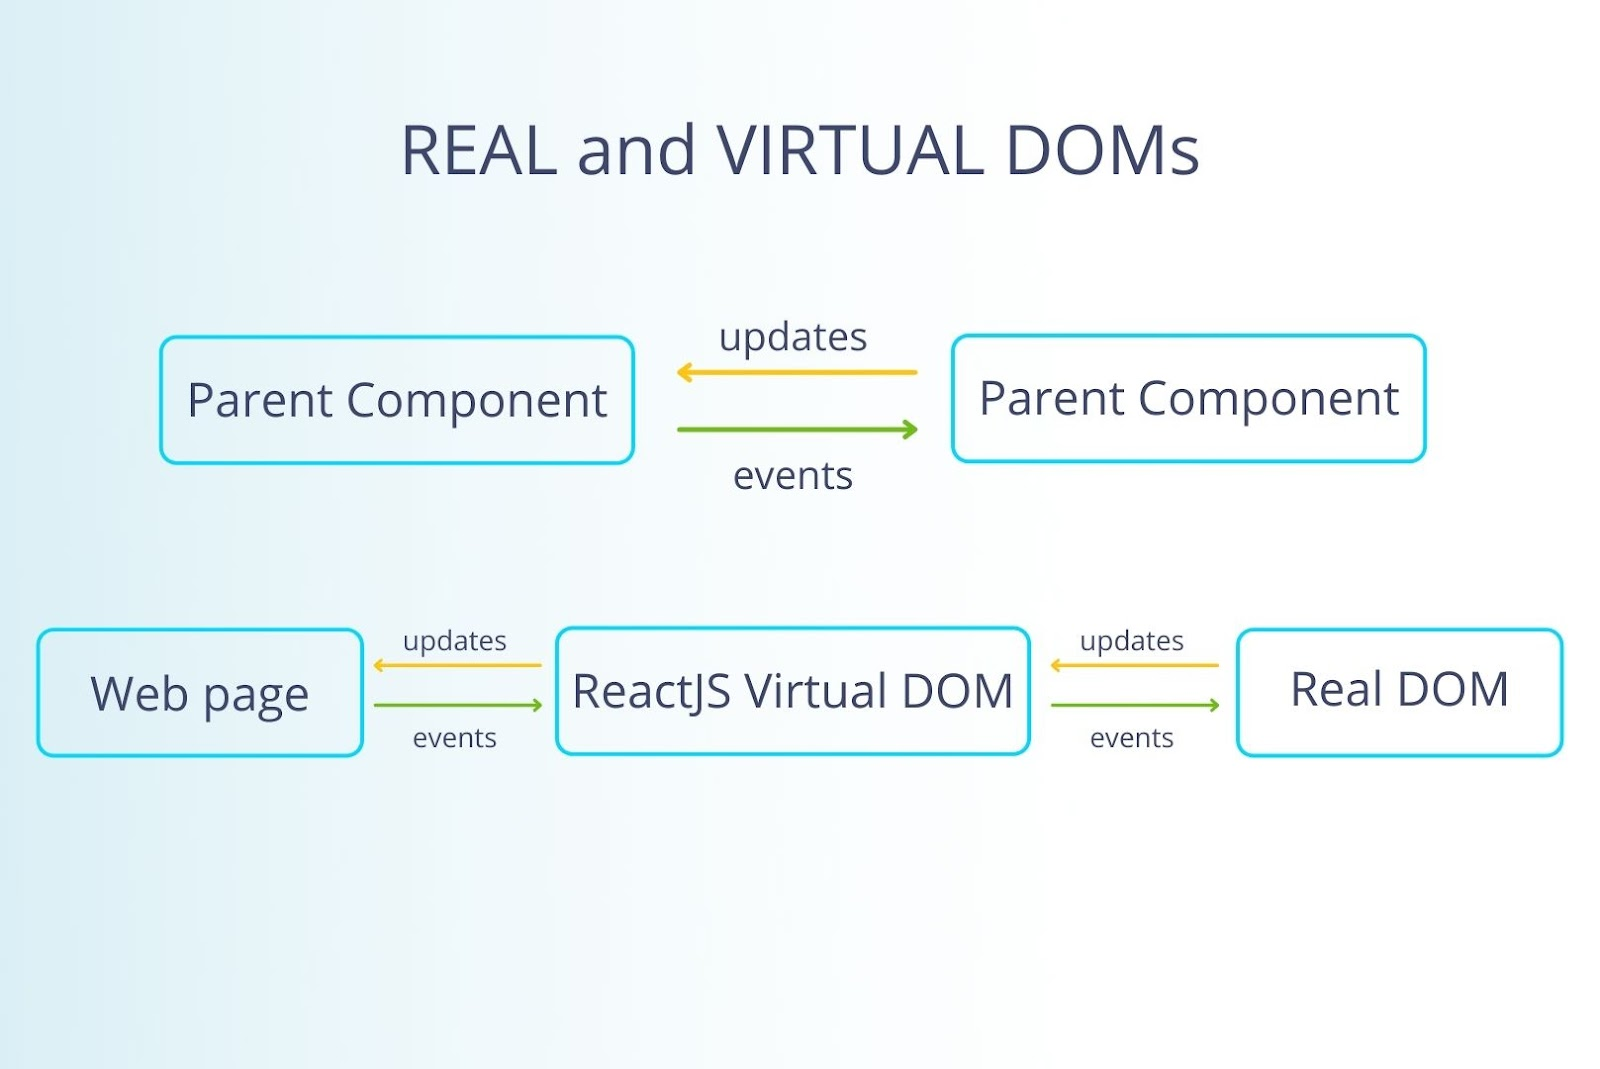 Real and Virtual DOMs